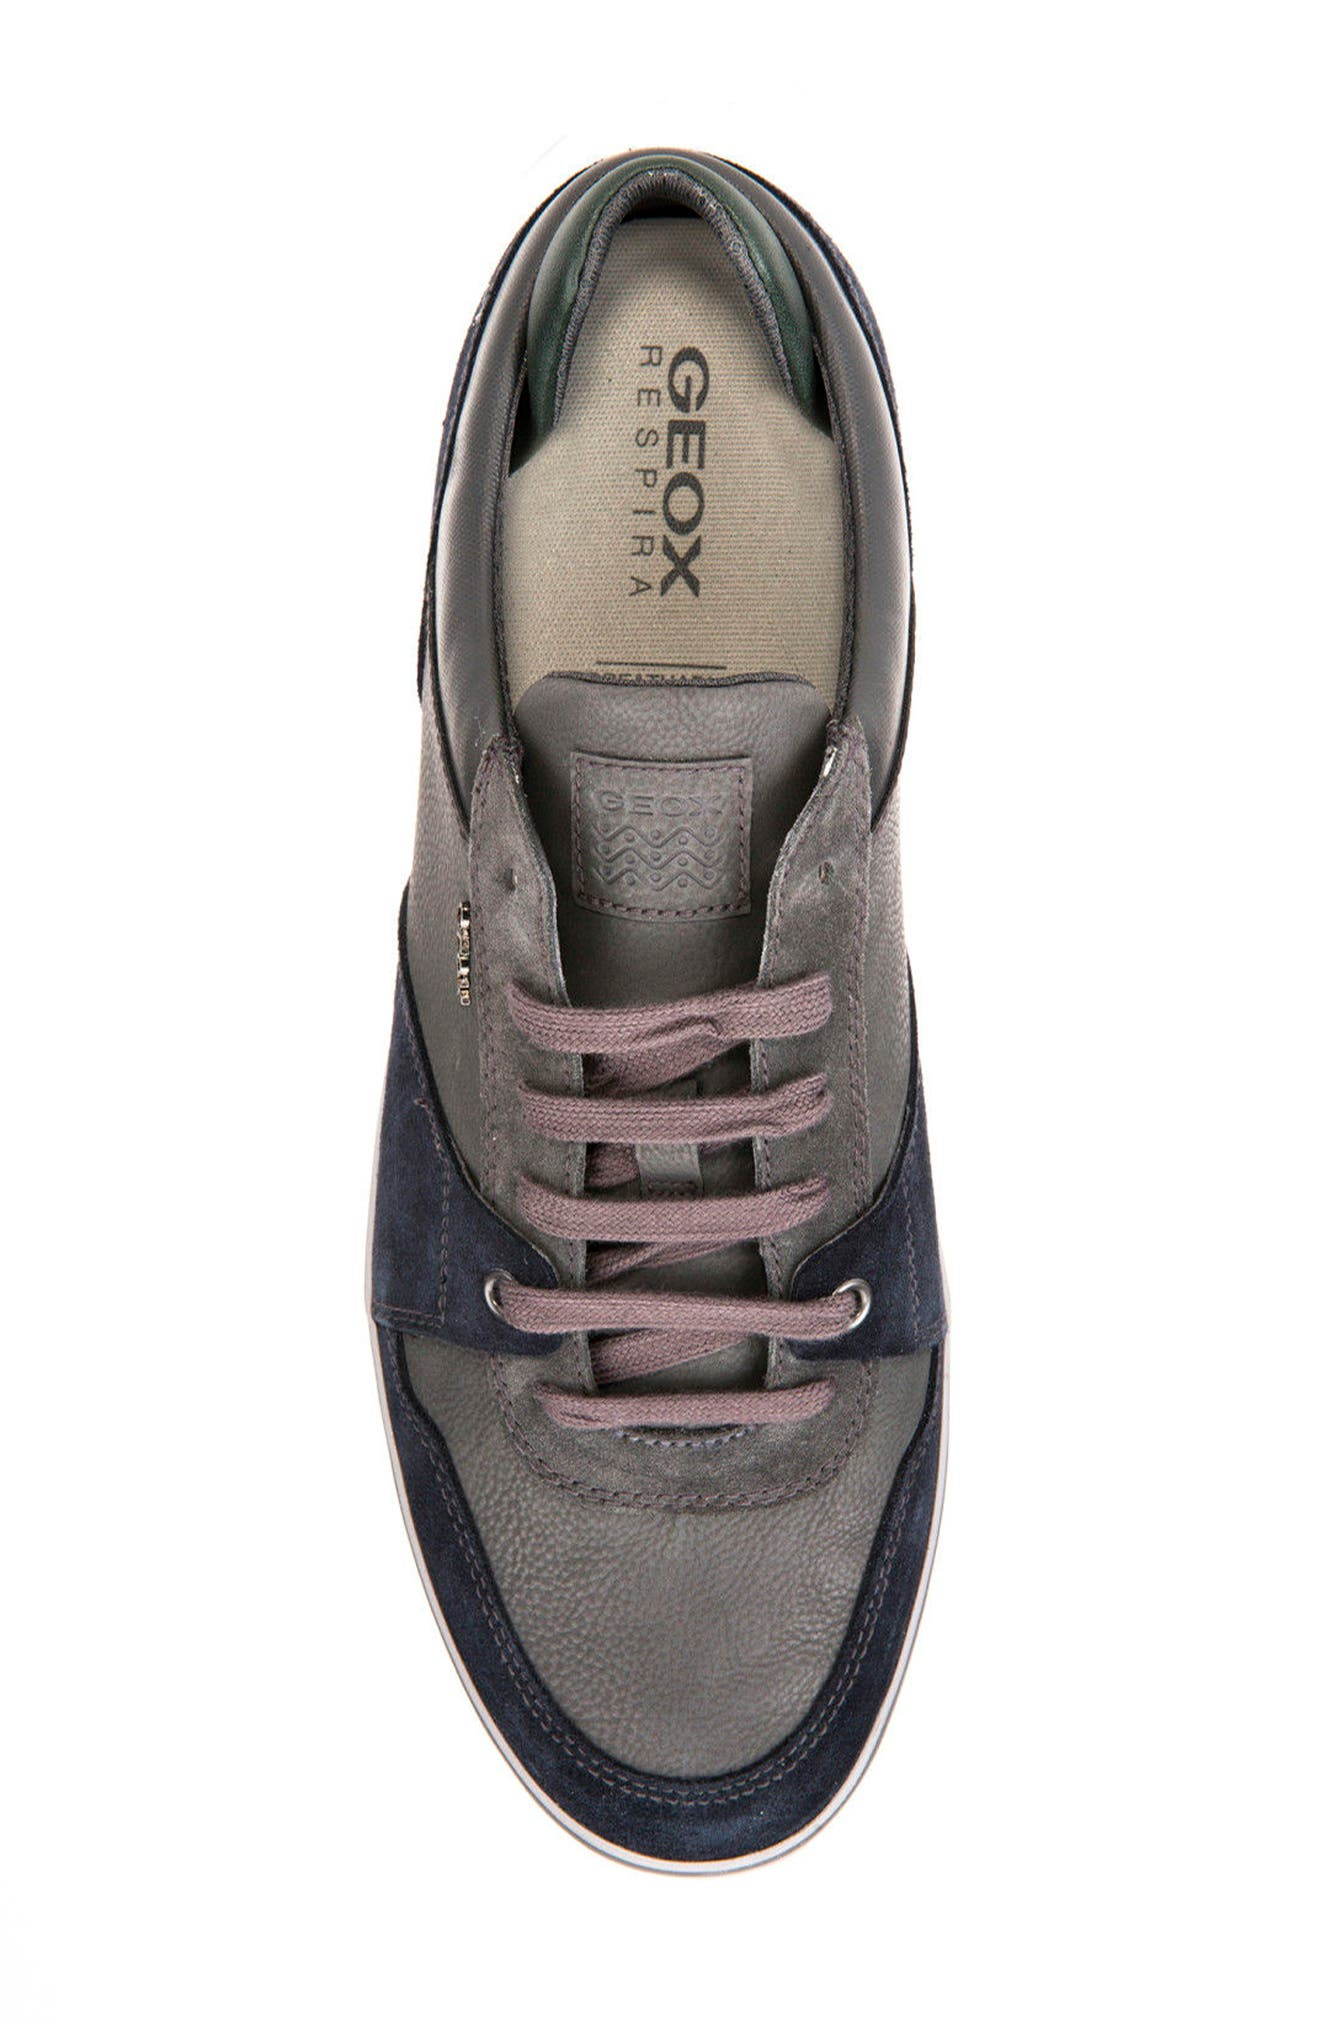 Box 26 Low Top Sneaker,                             Alternate thumbnail 5, color,                             Navy/ Anthracite